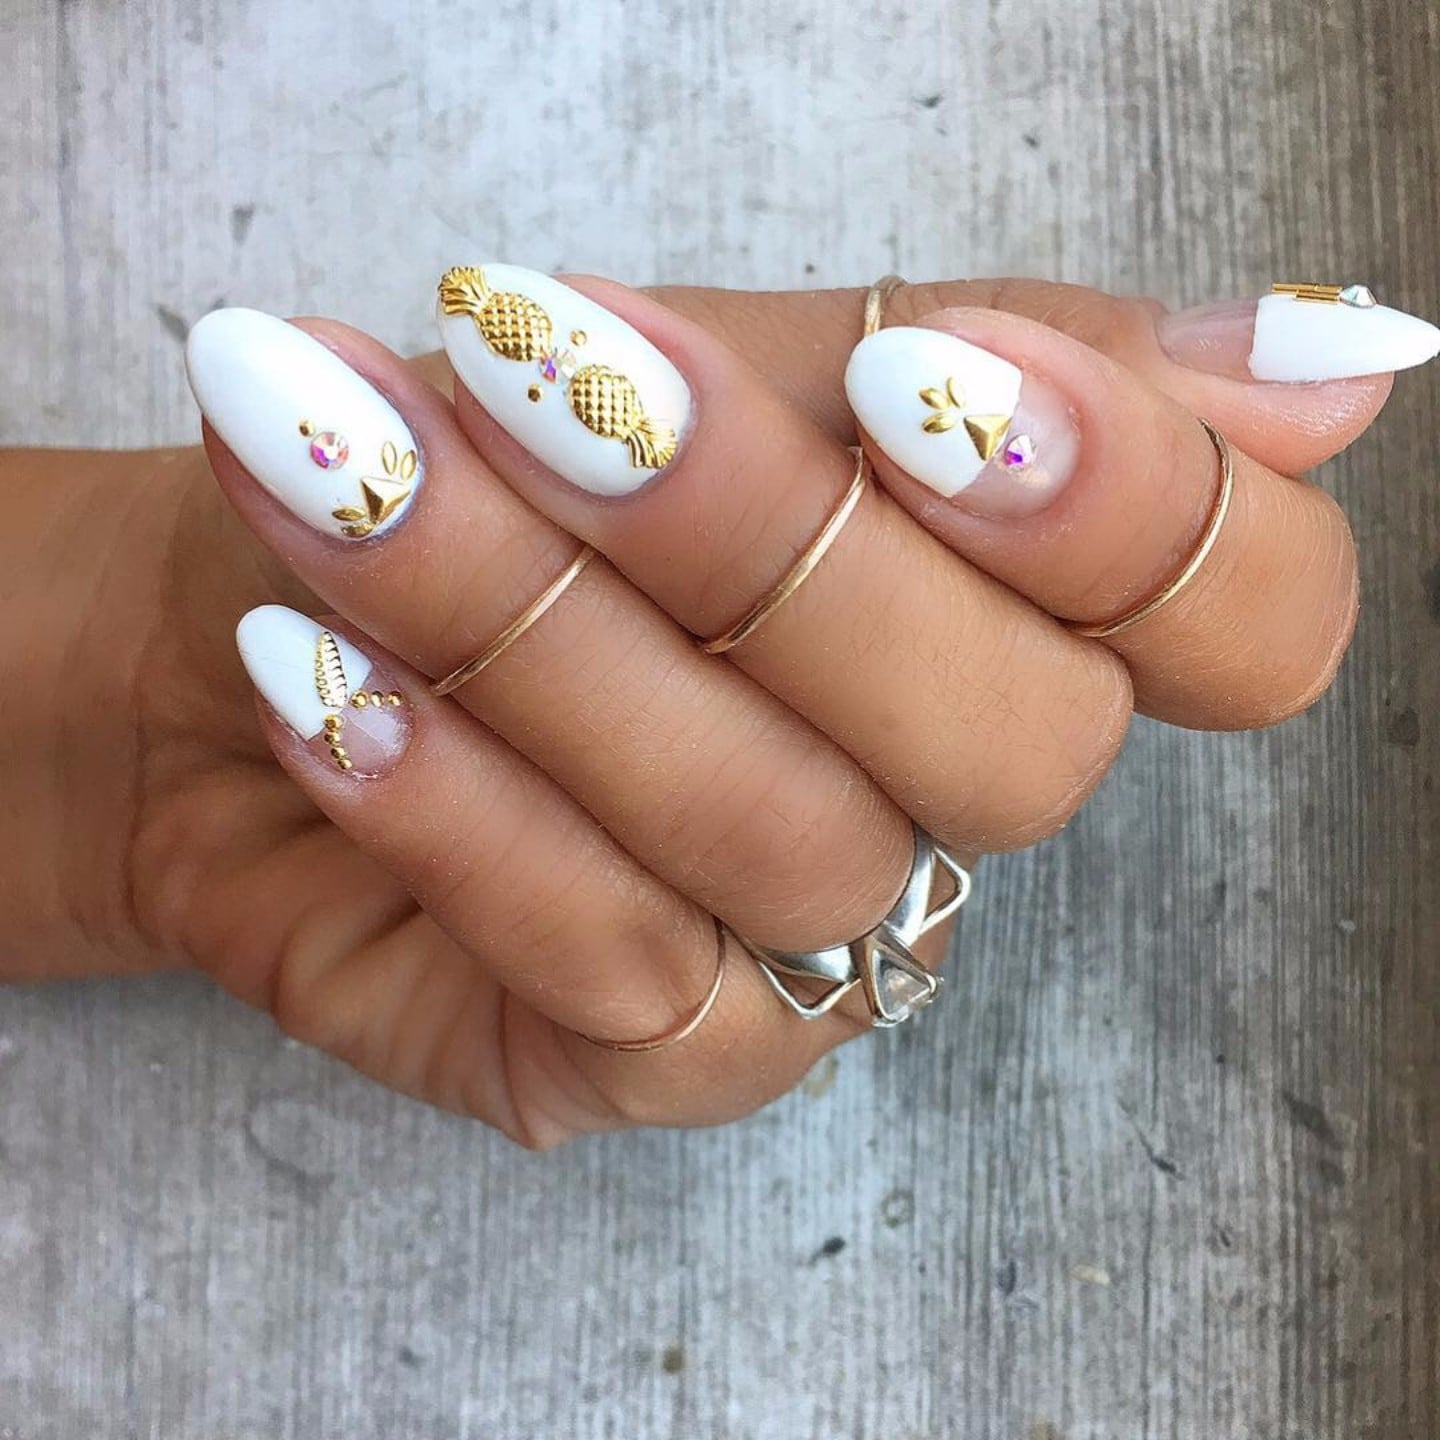 Top Nail Art Instagram Accounts | POPSUGAR Beauty Australia